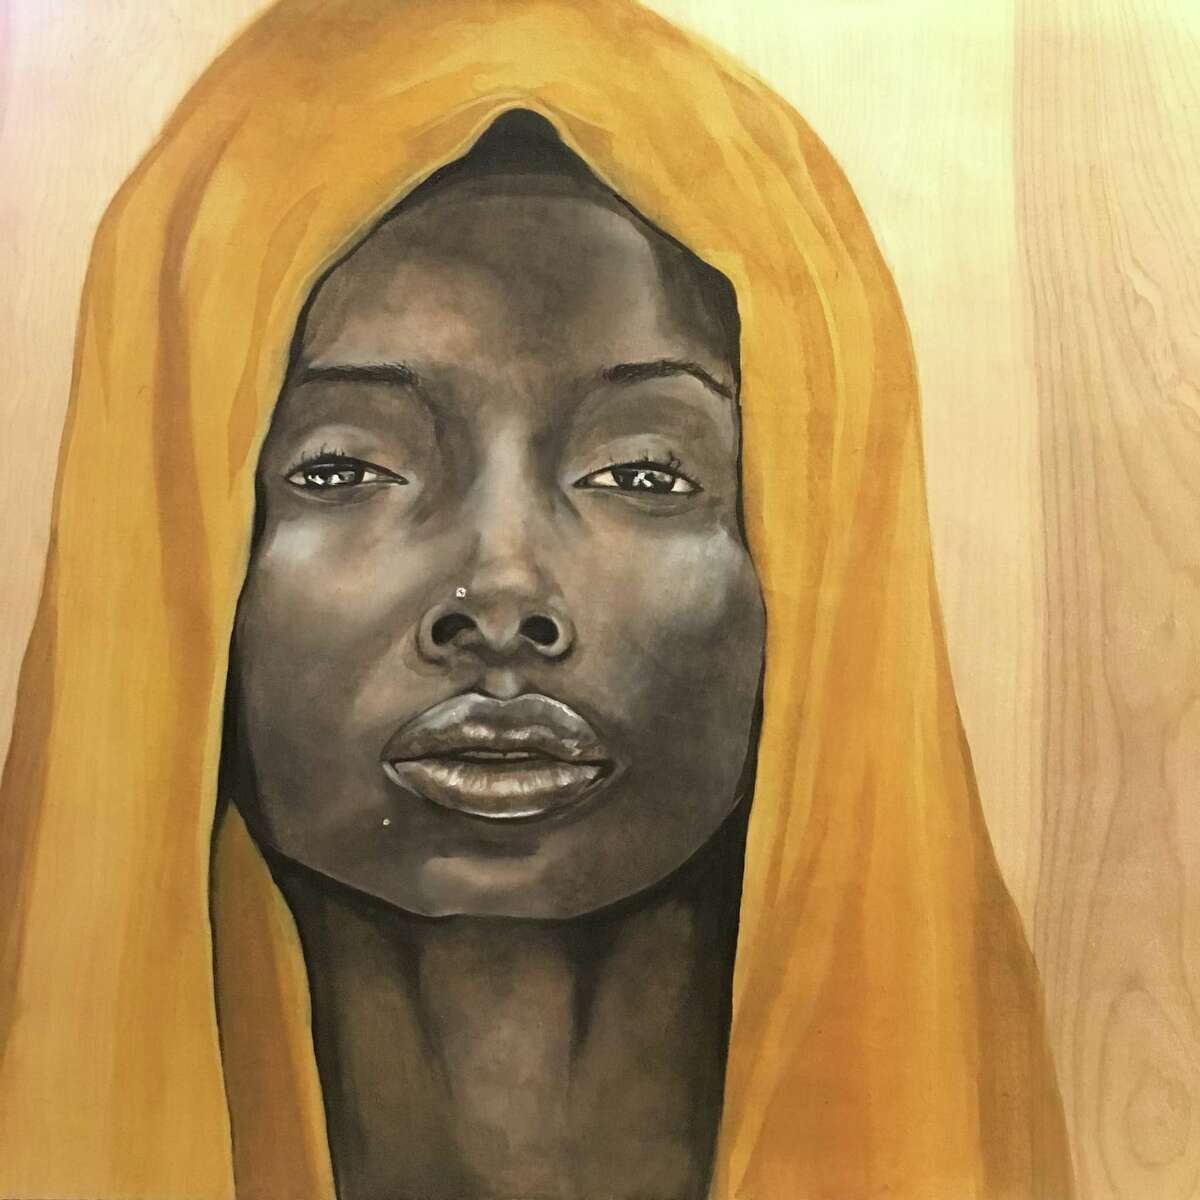 Houston artist Aesha Lee?s paintings are on view in ?The Beauty of the Black Woman? exhibit at the Houston Museum of African American Culture through April 7.